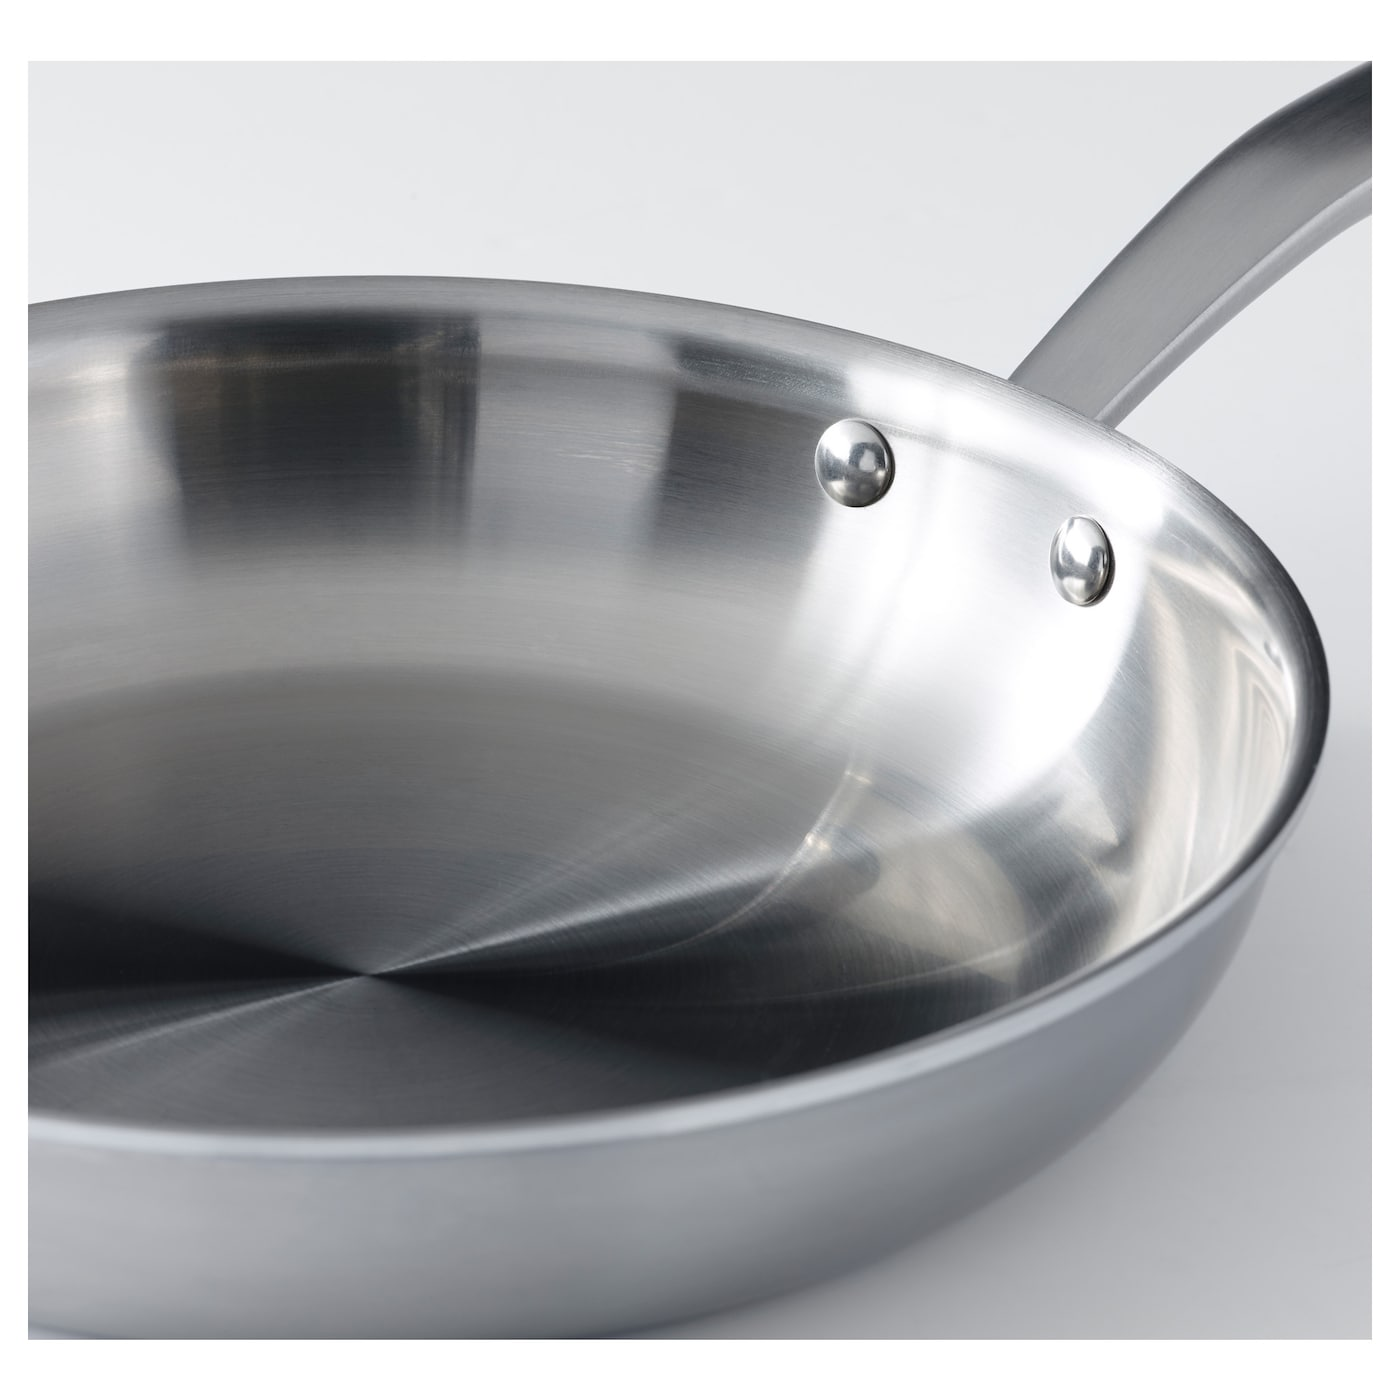 IKEA SENSUELL frying pan 25 year guarantee. Read about the terms in the guarantee brochure.